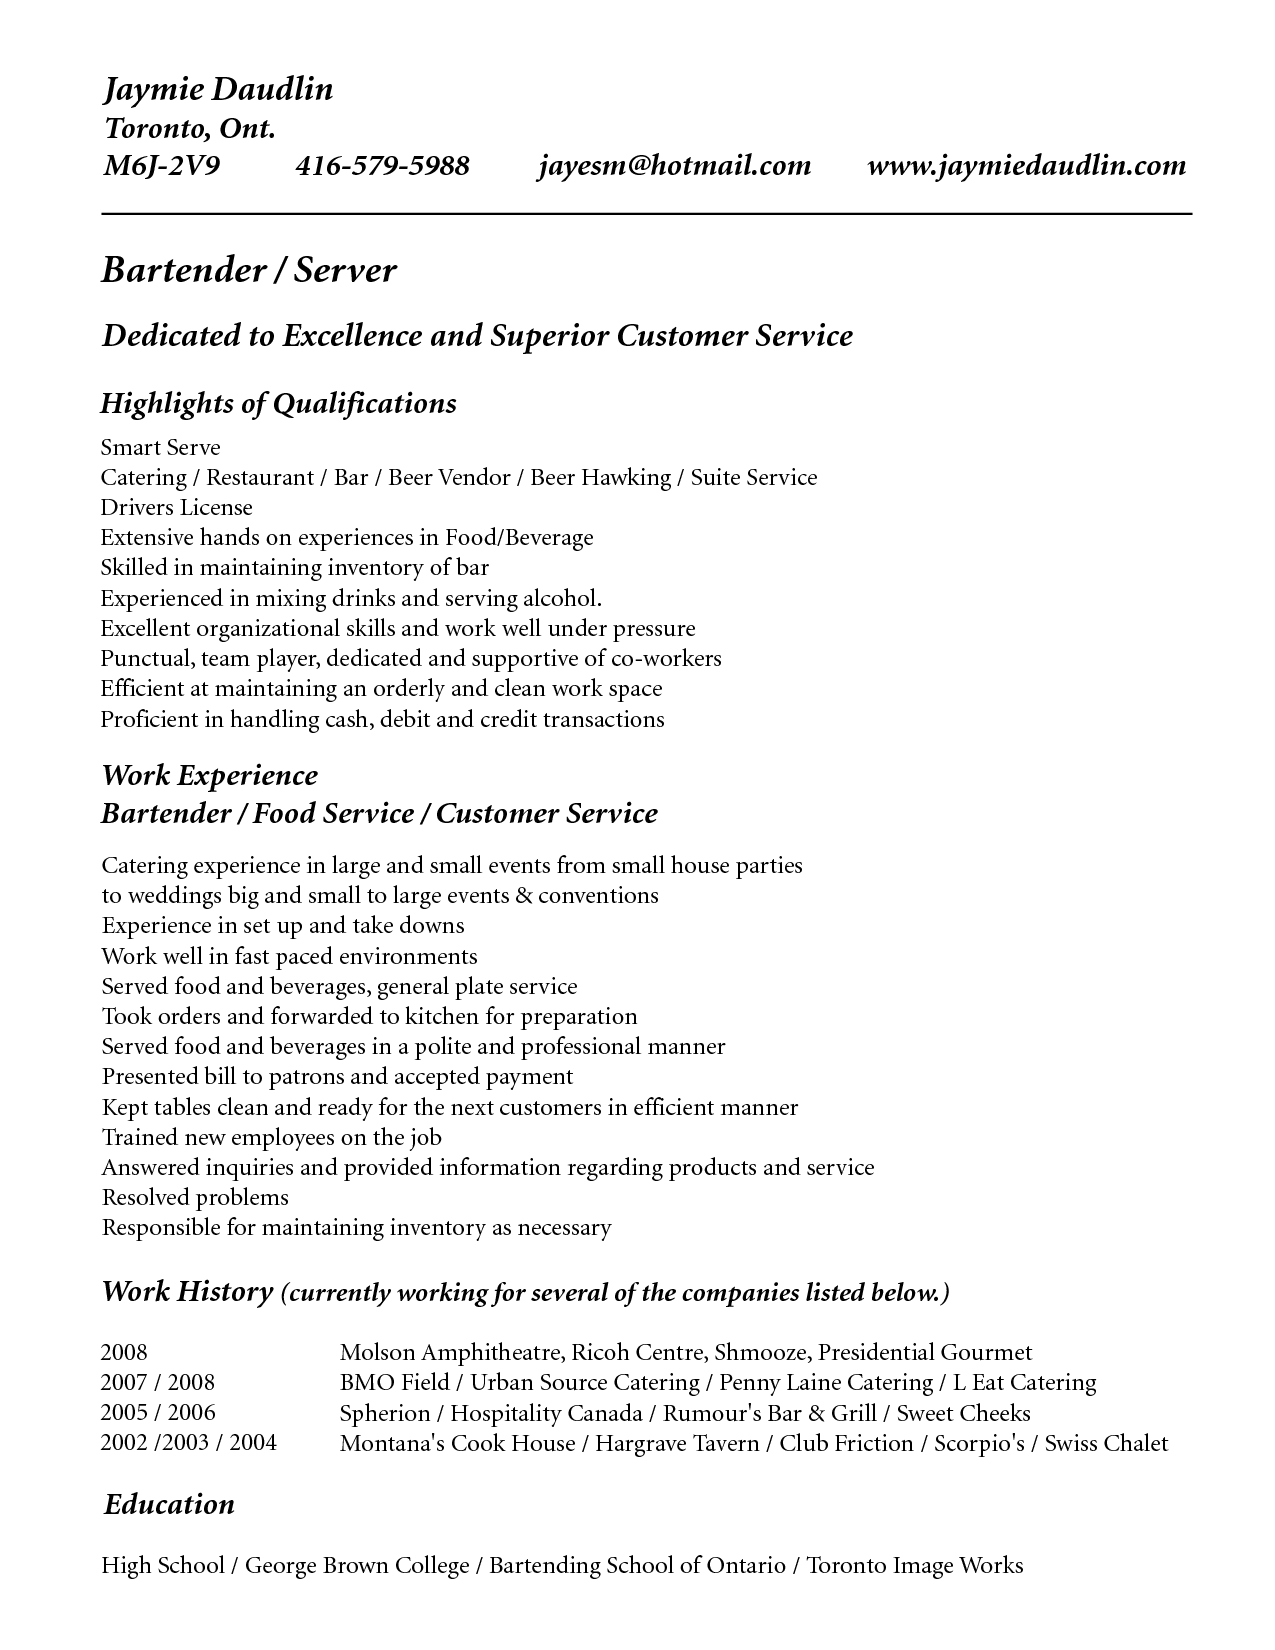 resume Job Description Of A Bartender For Resume resume of a bartender ninja turtletechrepairs co bartender